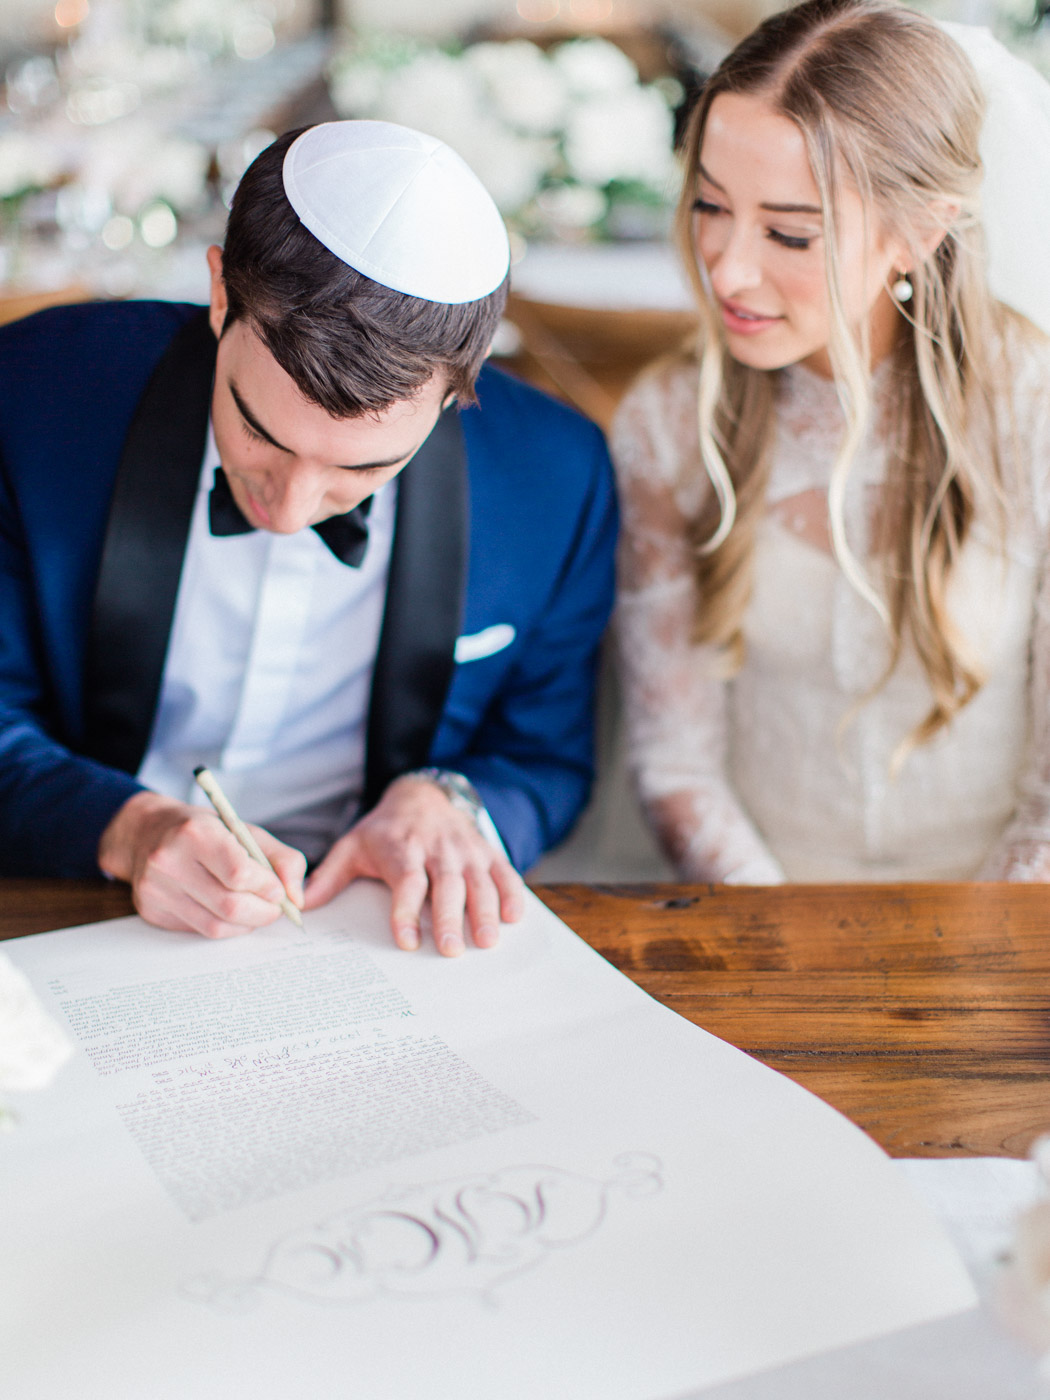 -	Bride and groom signing the ketuba at their traditional jewish wedding ceremony at an intimate restaurant venue in Toronto.  Captured by Toronto wedding photographer Corynn Fowler Photography.